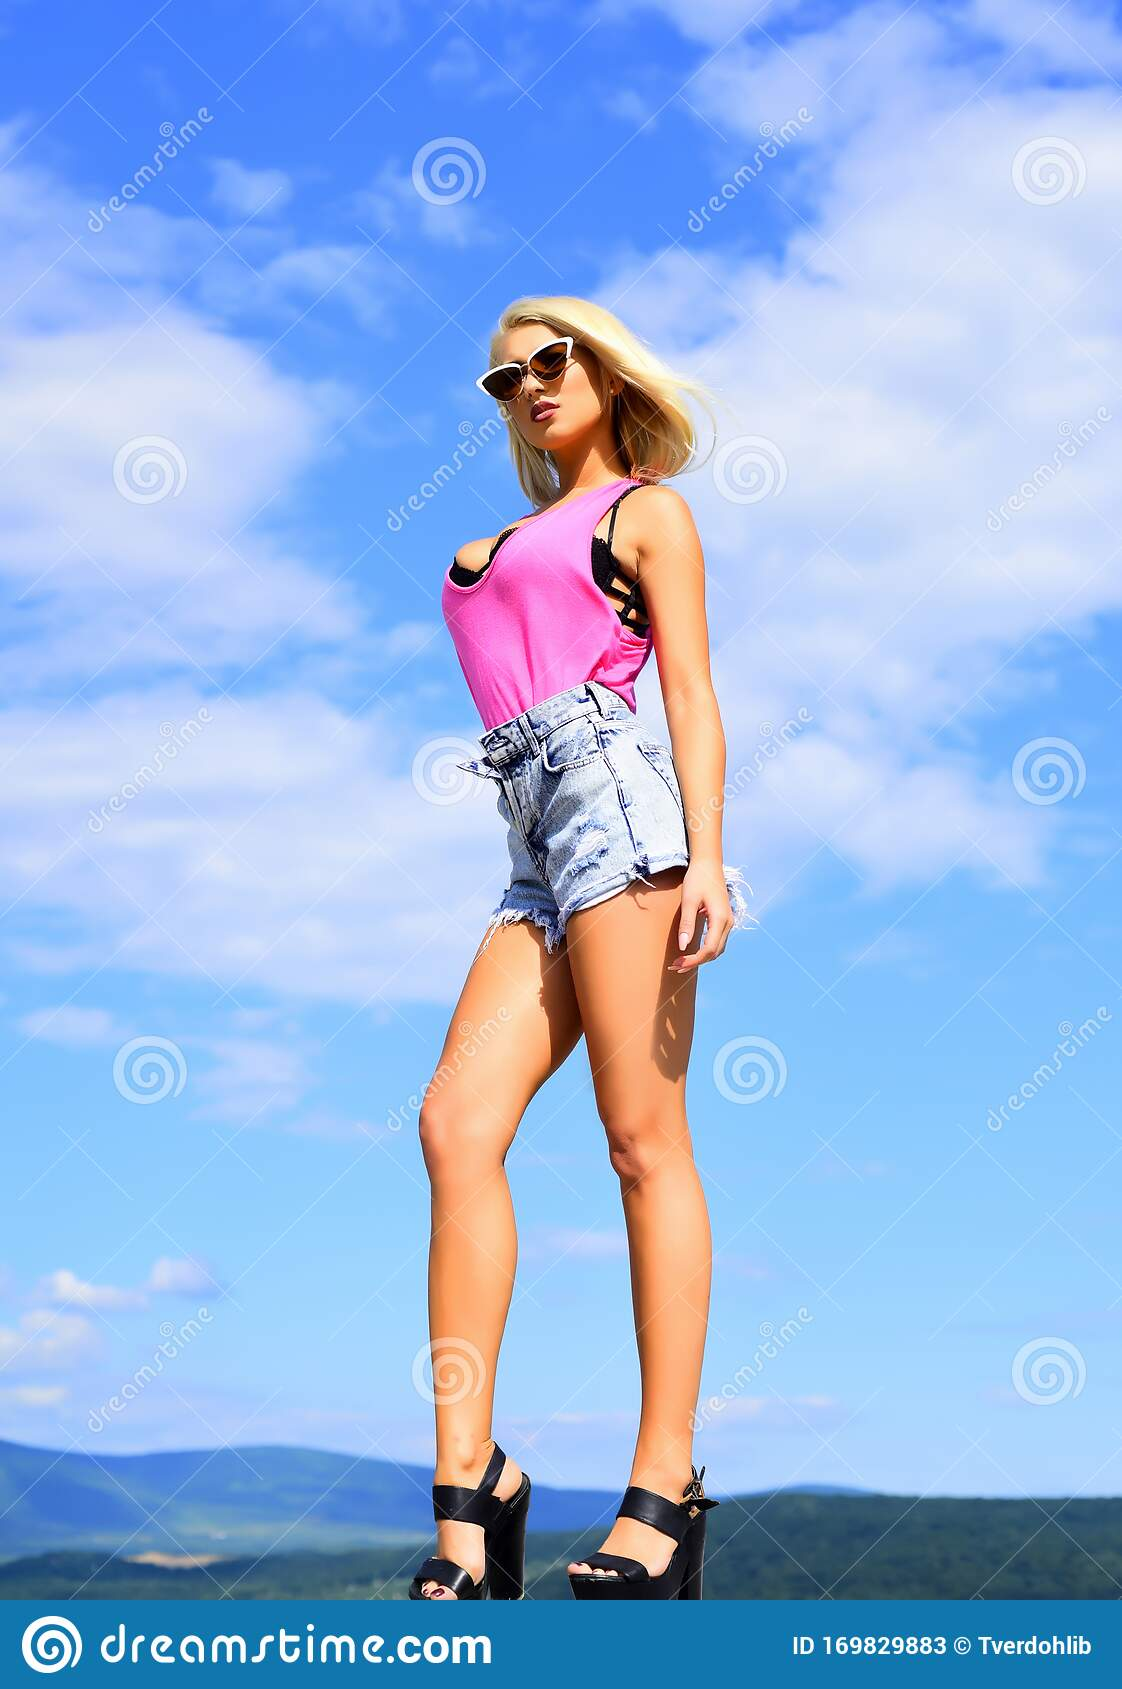 Hot blonde babe stock illustration download image now istock.